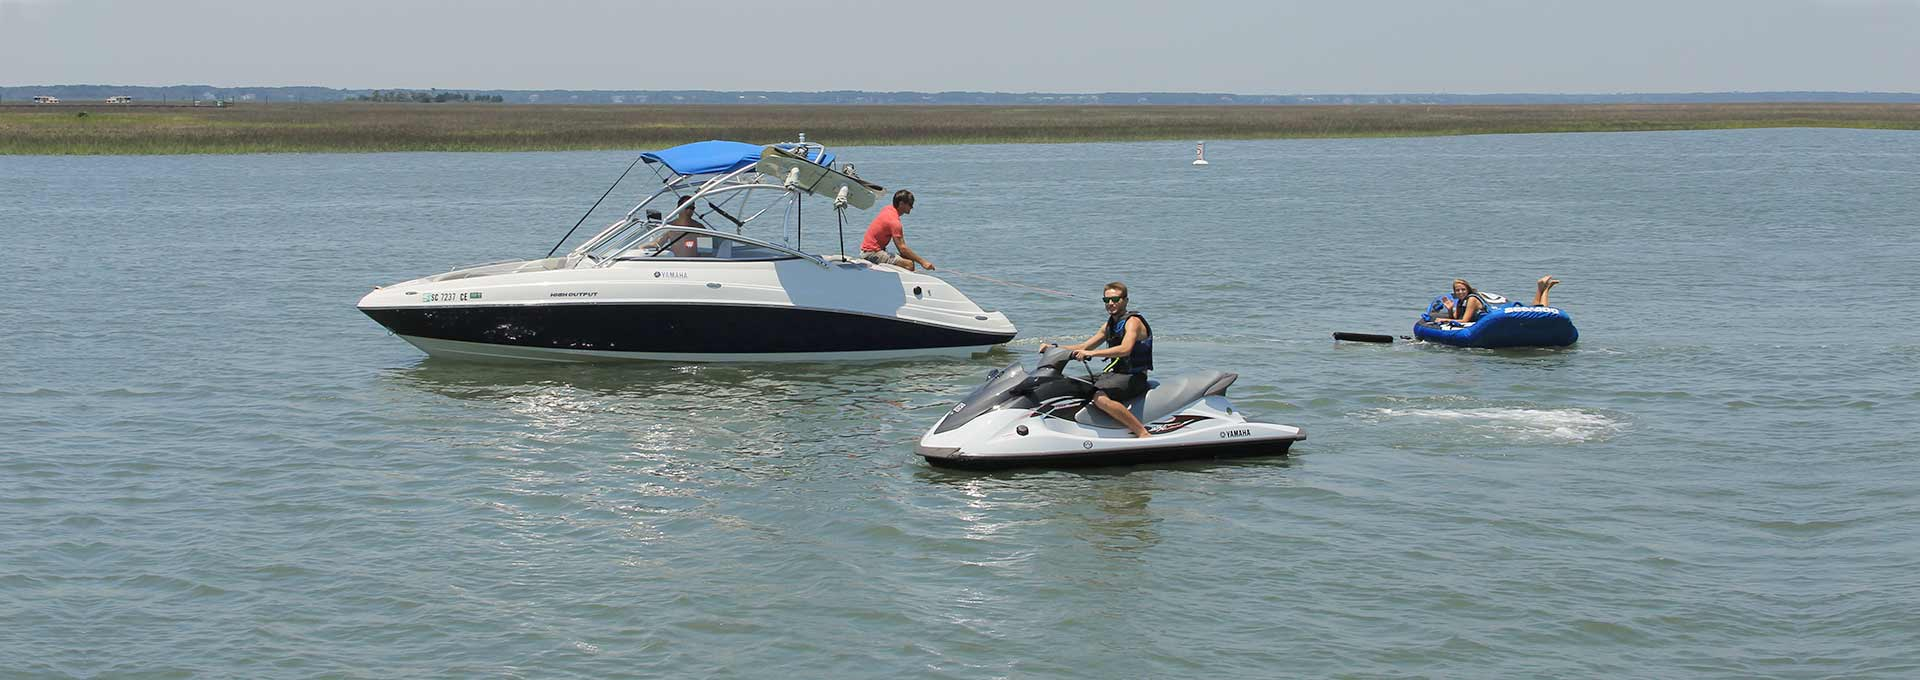 Add A Jetski To Your Charter